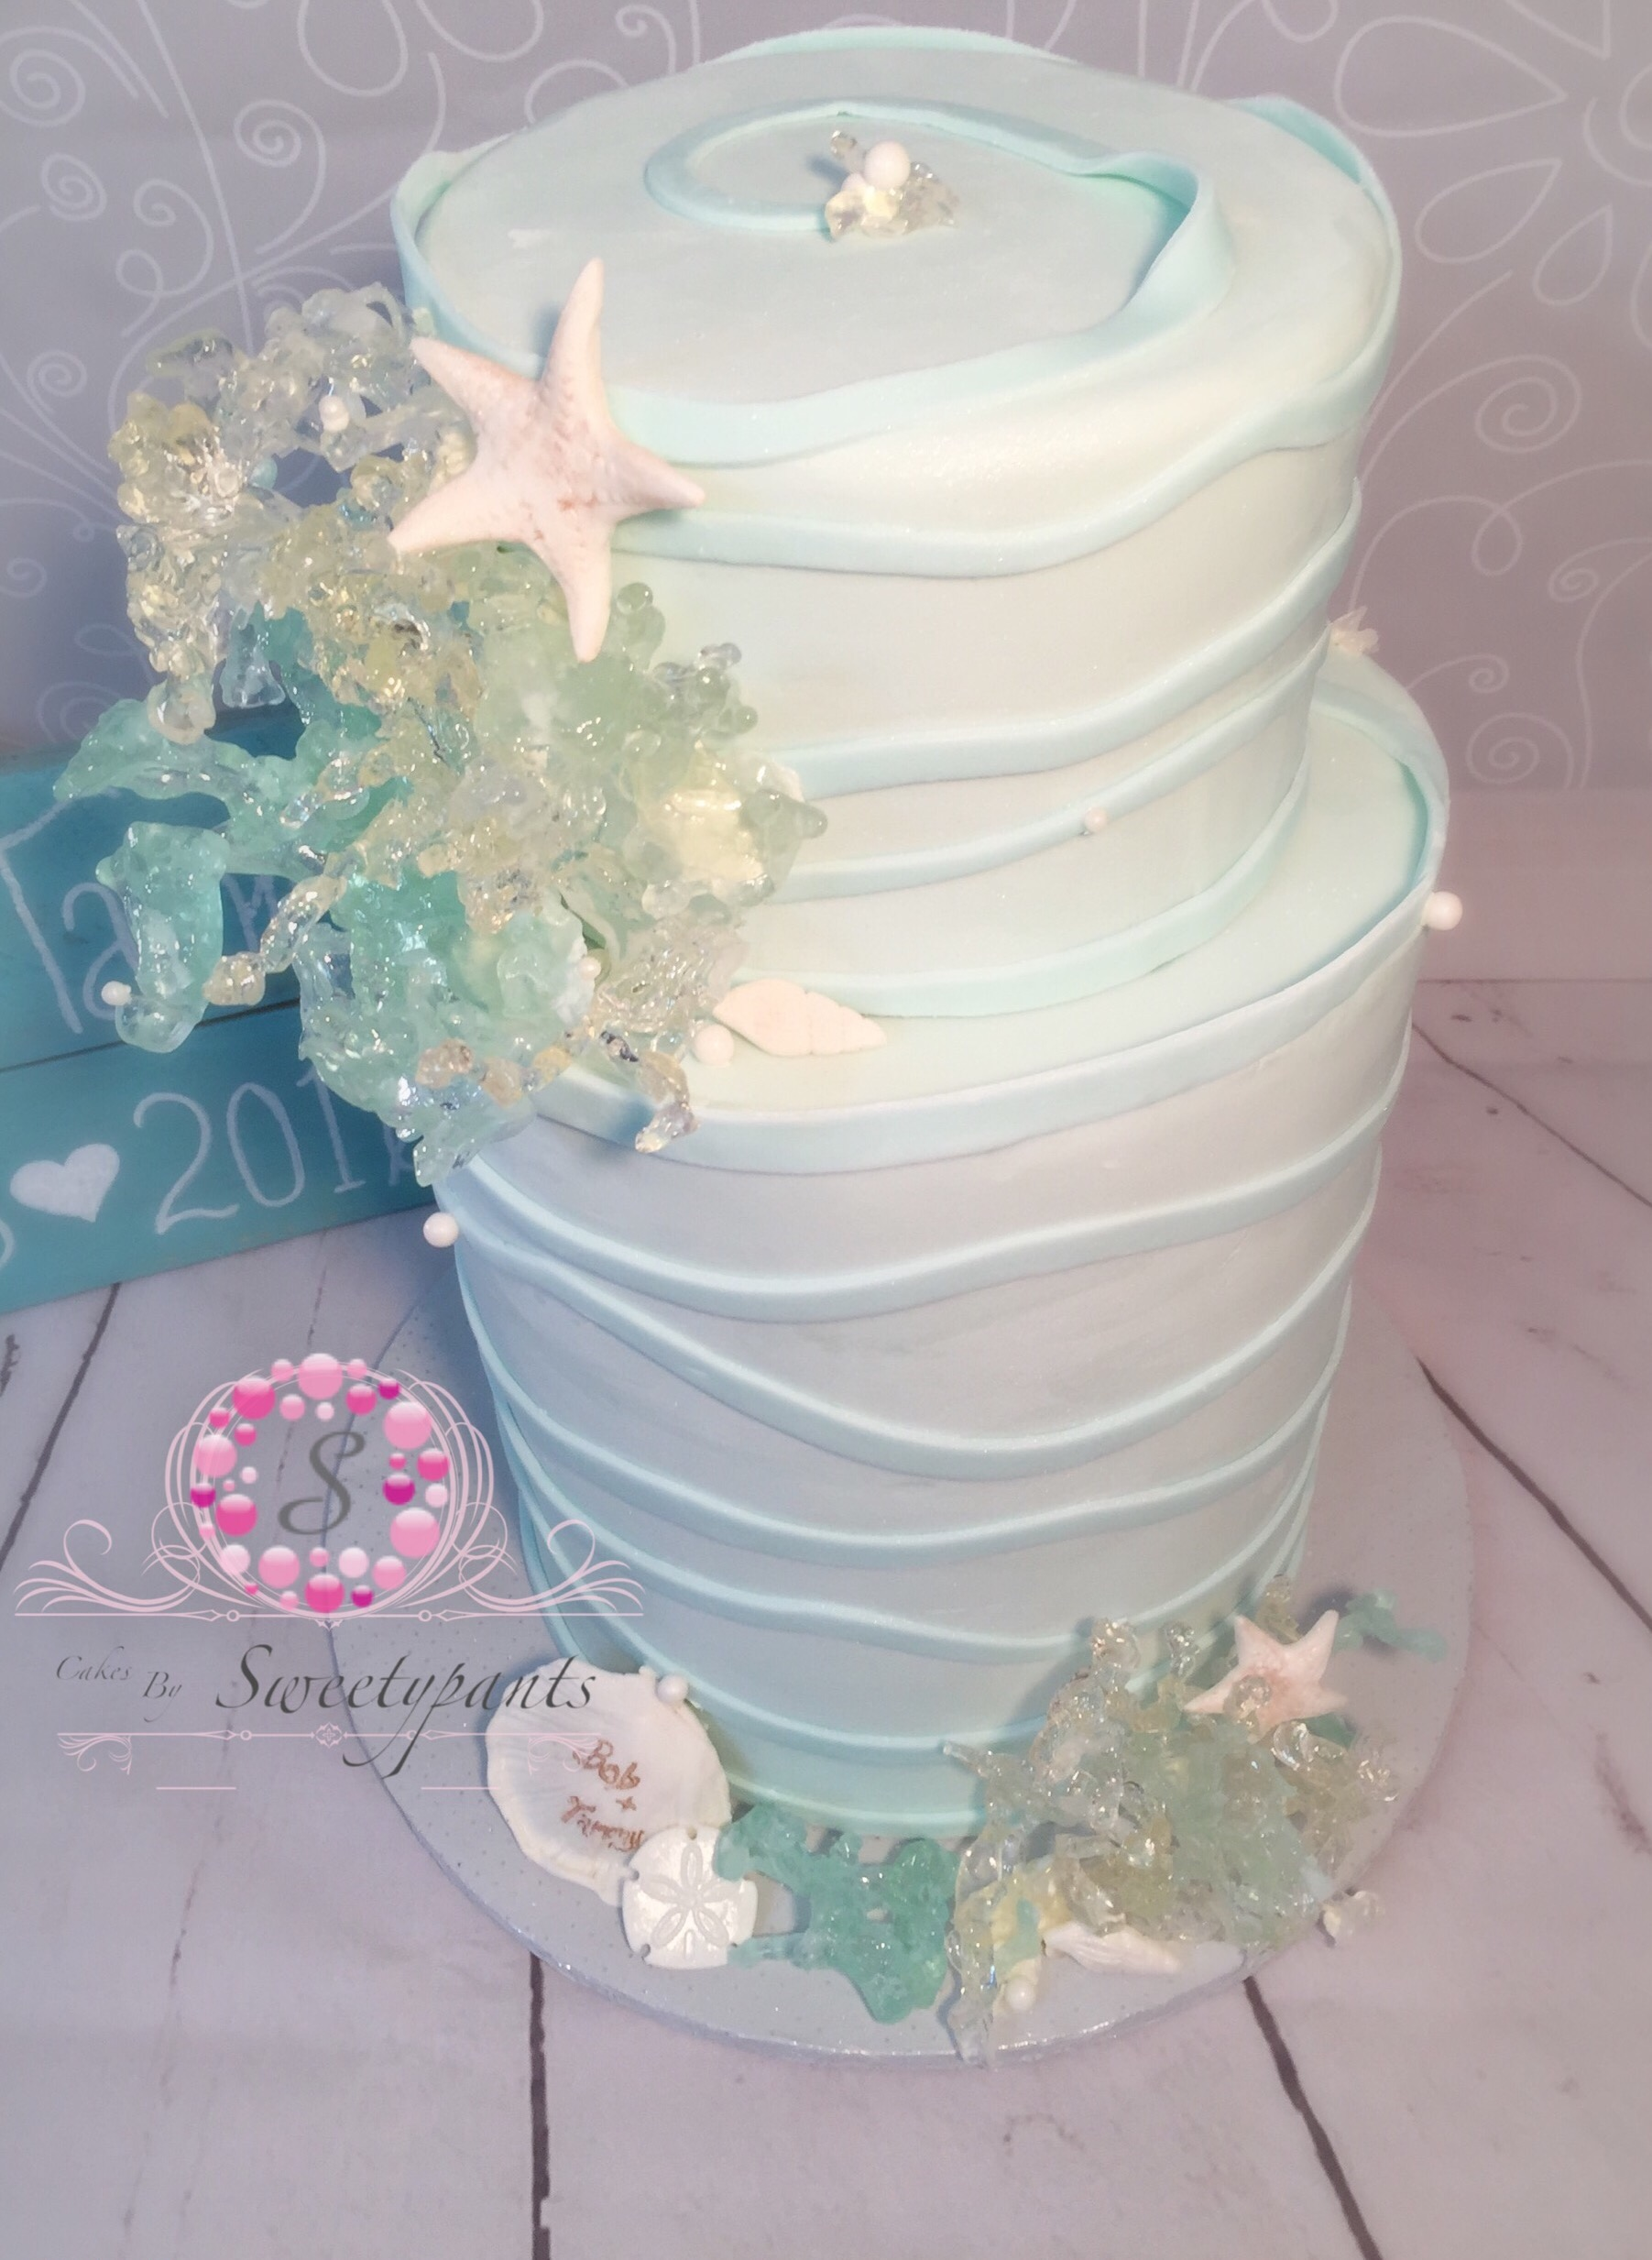 wedding cake | Cakes By Sweetypants